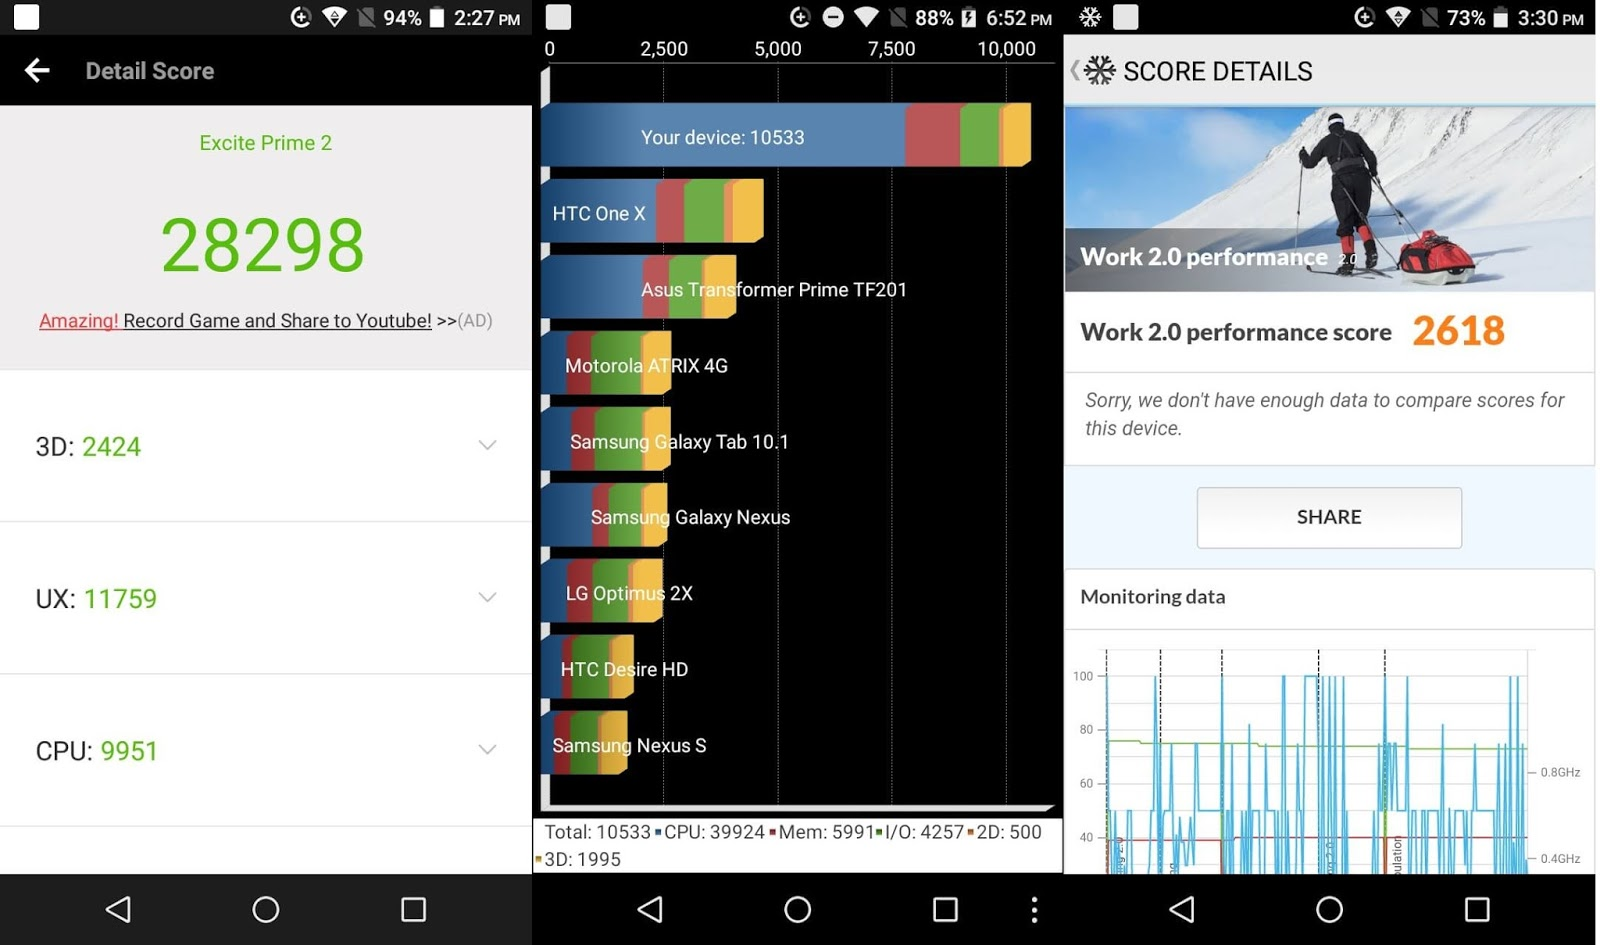 Cloudfone Excite Prime 2's Benchmark Results